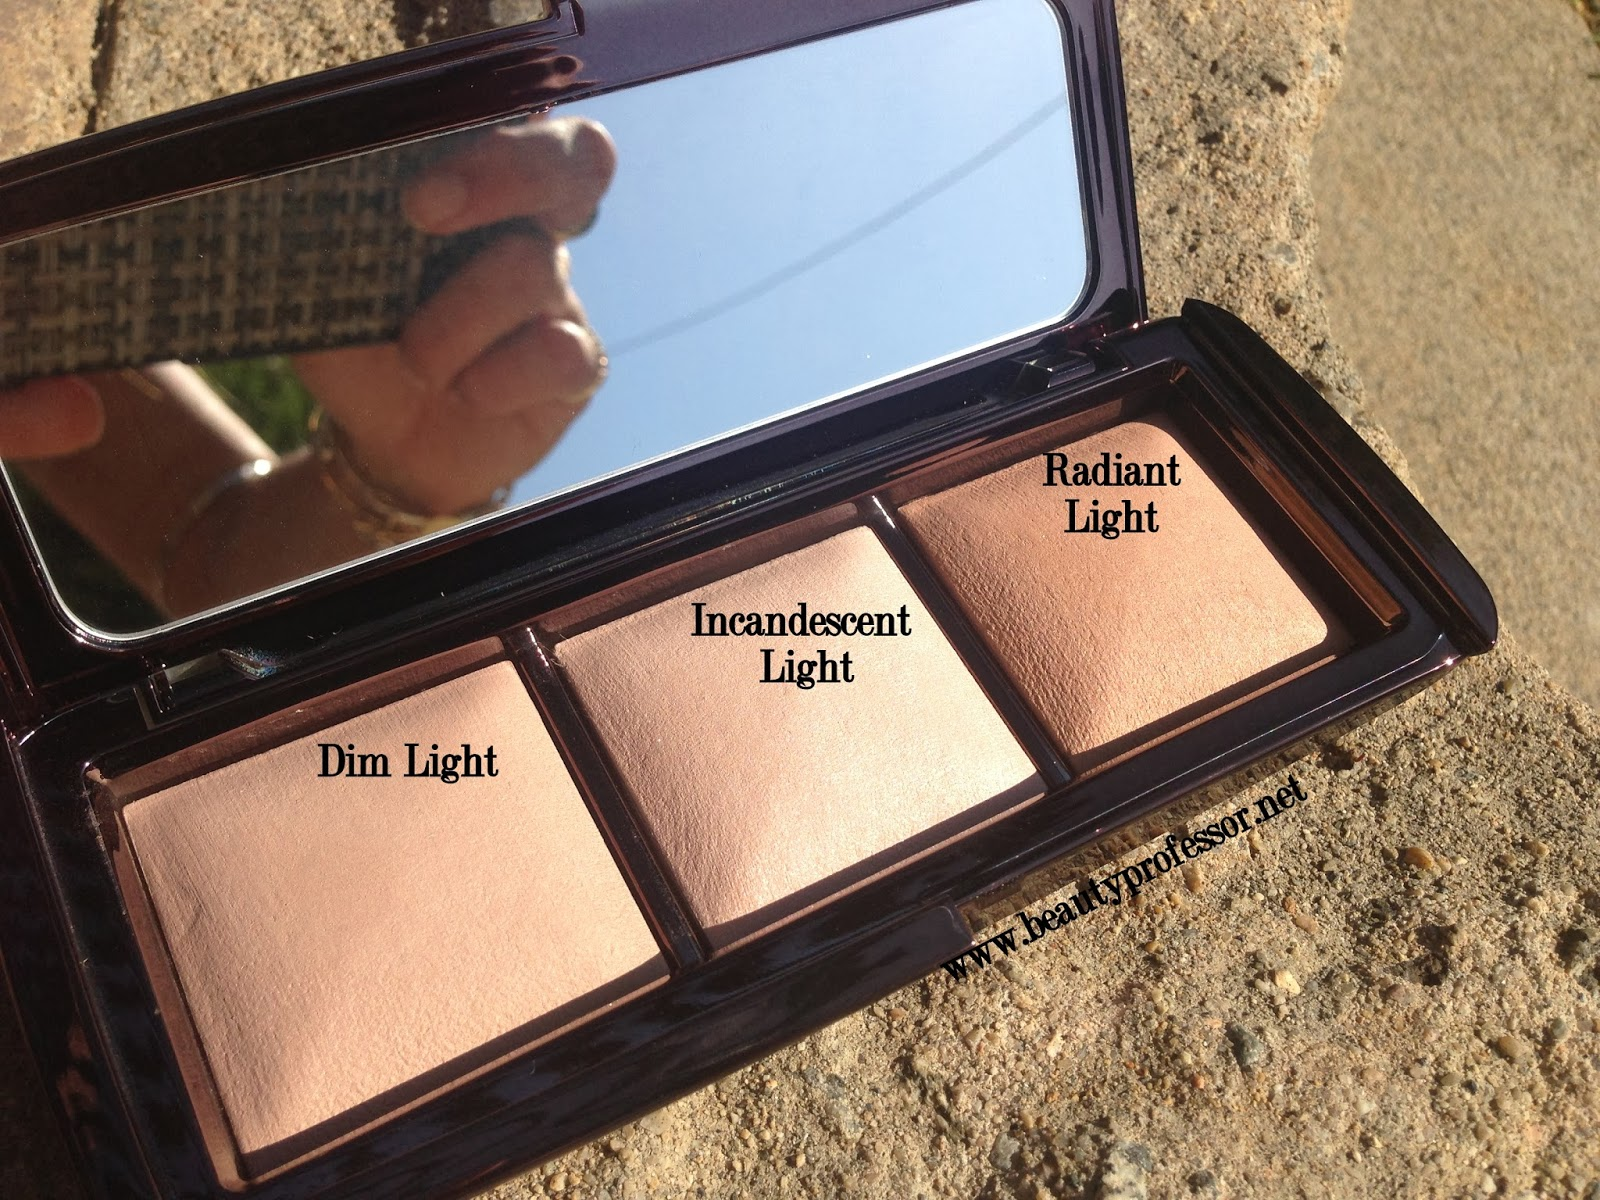 Above: All Three Shades In Direct Sunlight.